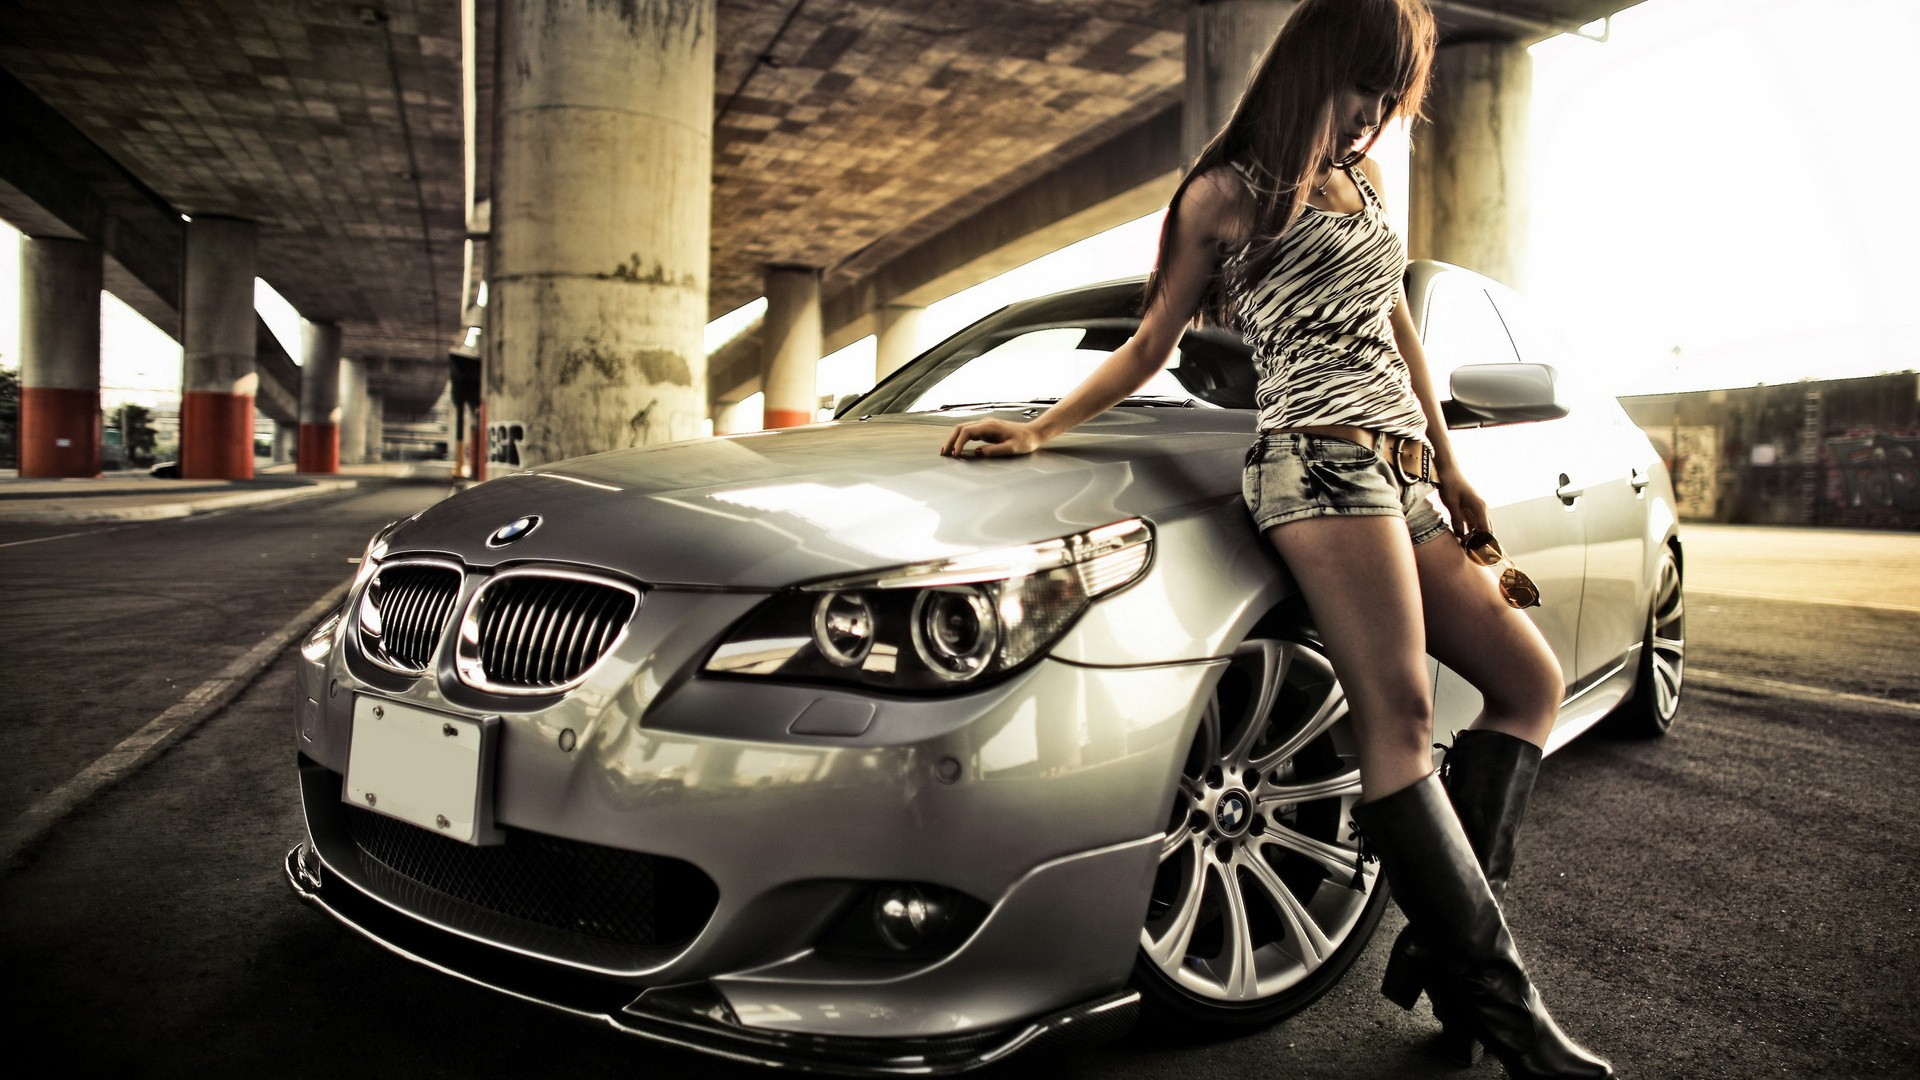 Home Cars Vehicules Cars Girls and Cars Wallpaper hd 1920x1080